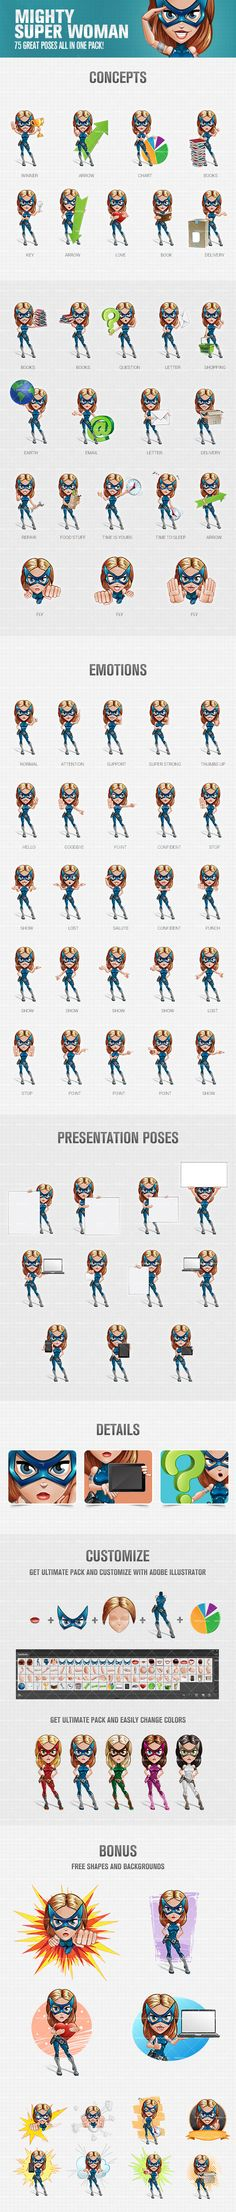 Mighty super woman cartoon character made in 75 great poses. We've made a cheerful and friendly mighty super woman that could really liven up your projects! Continue reading →